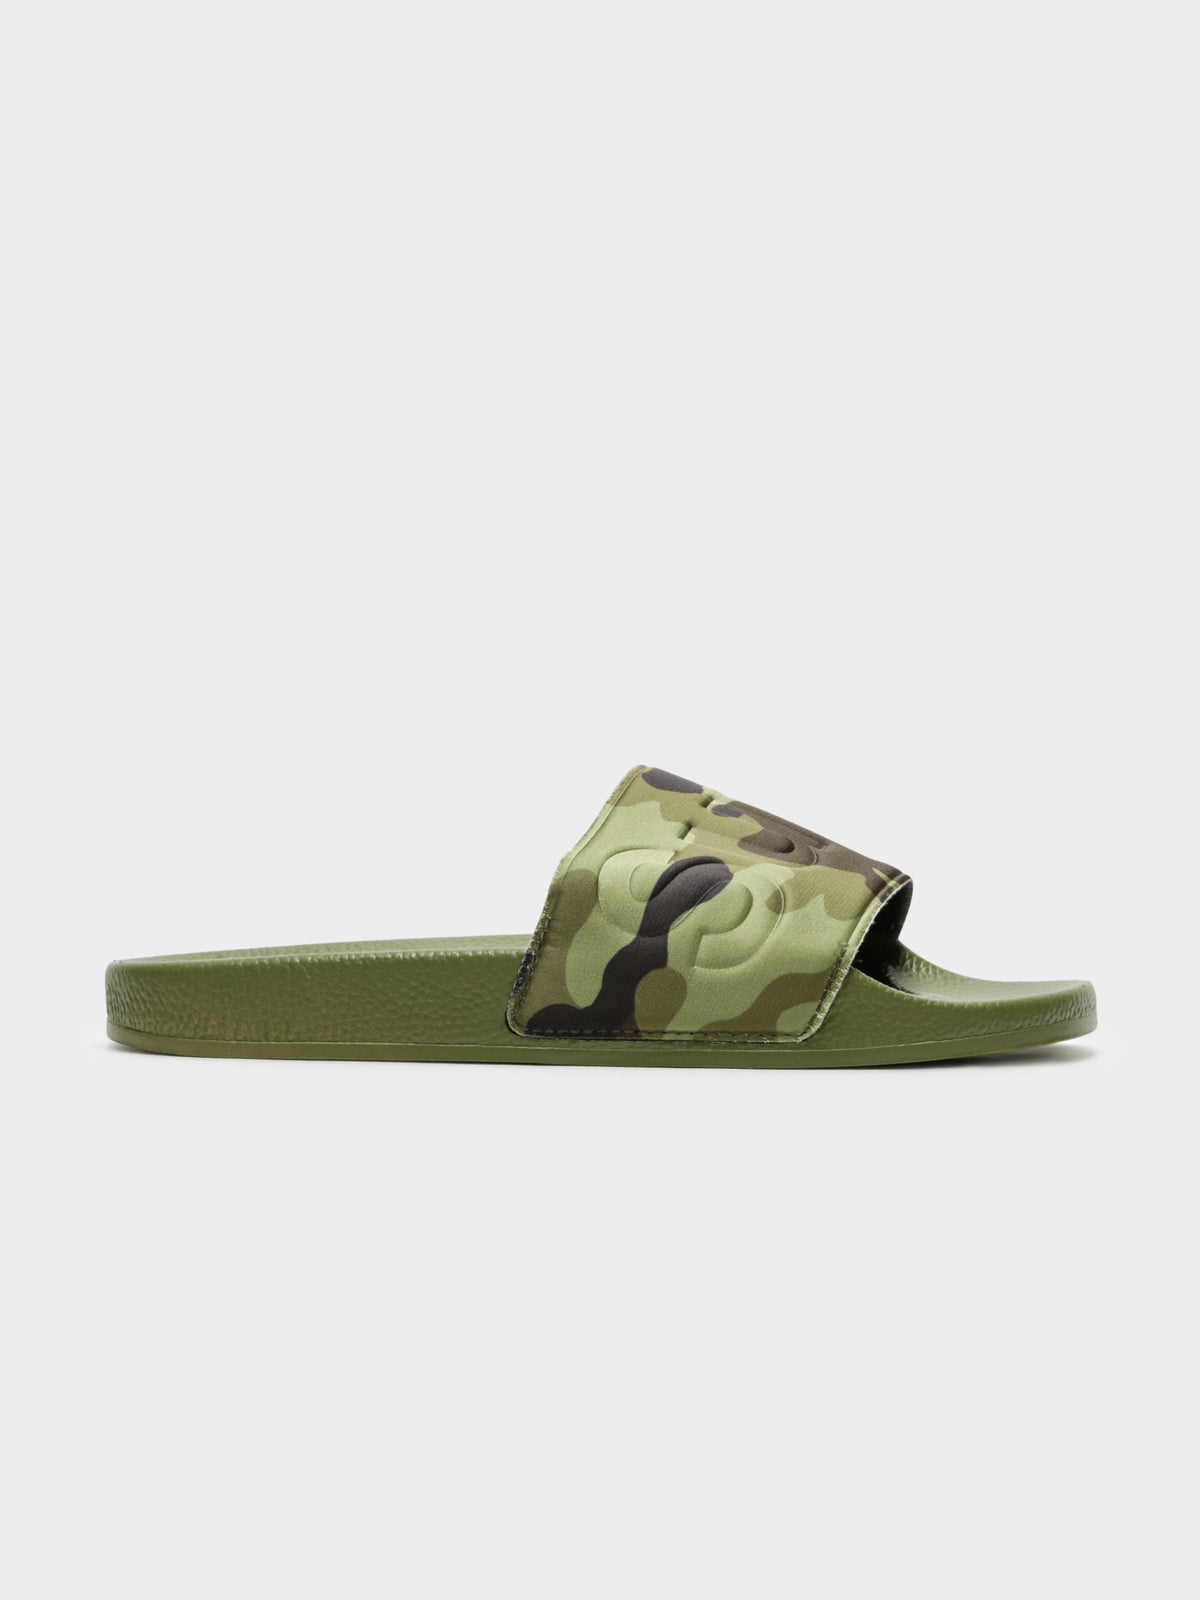 Womens 1908 Rasocamow Slides in Green Camo